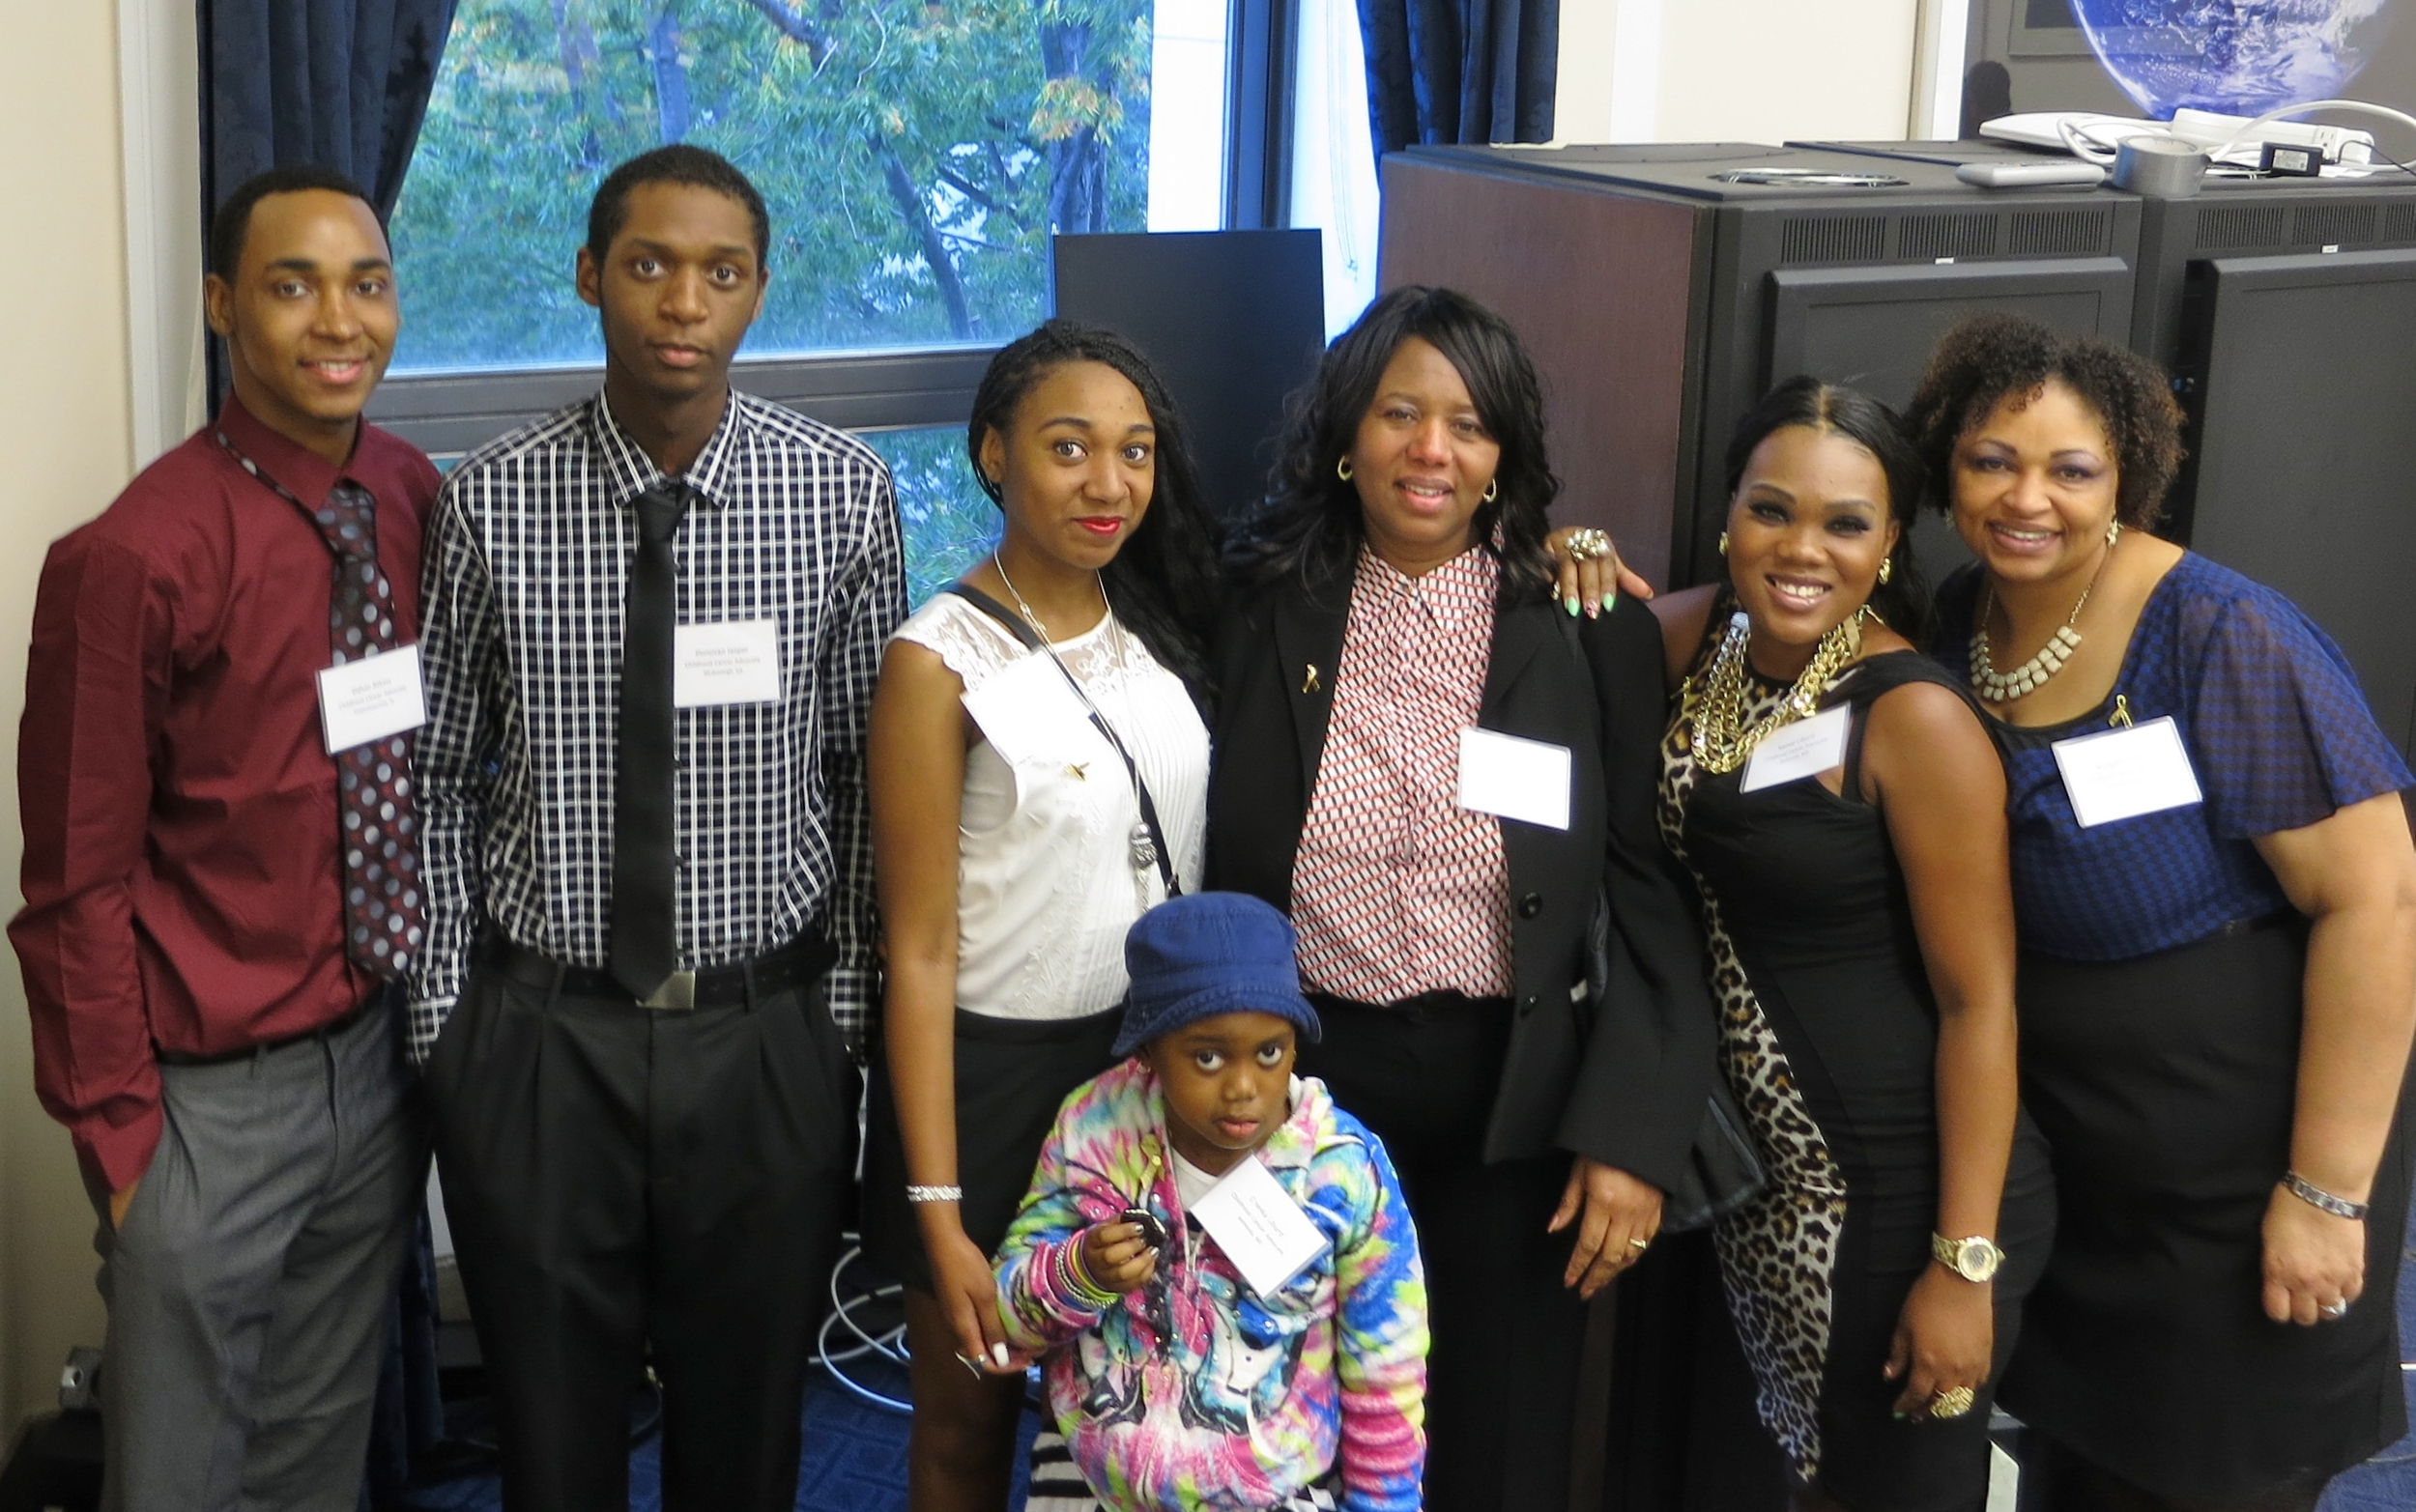 We were honored to be joined by three families currently staying at the NIH Children's Inn.